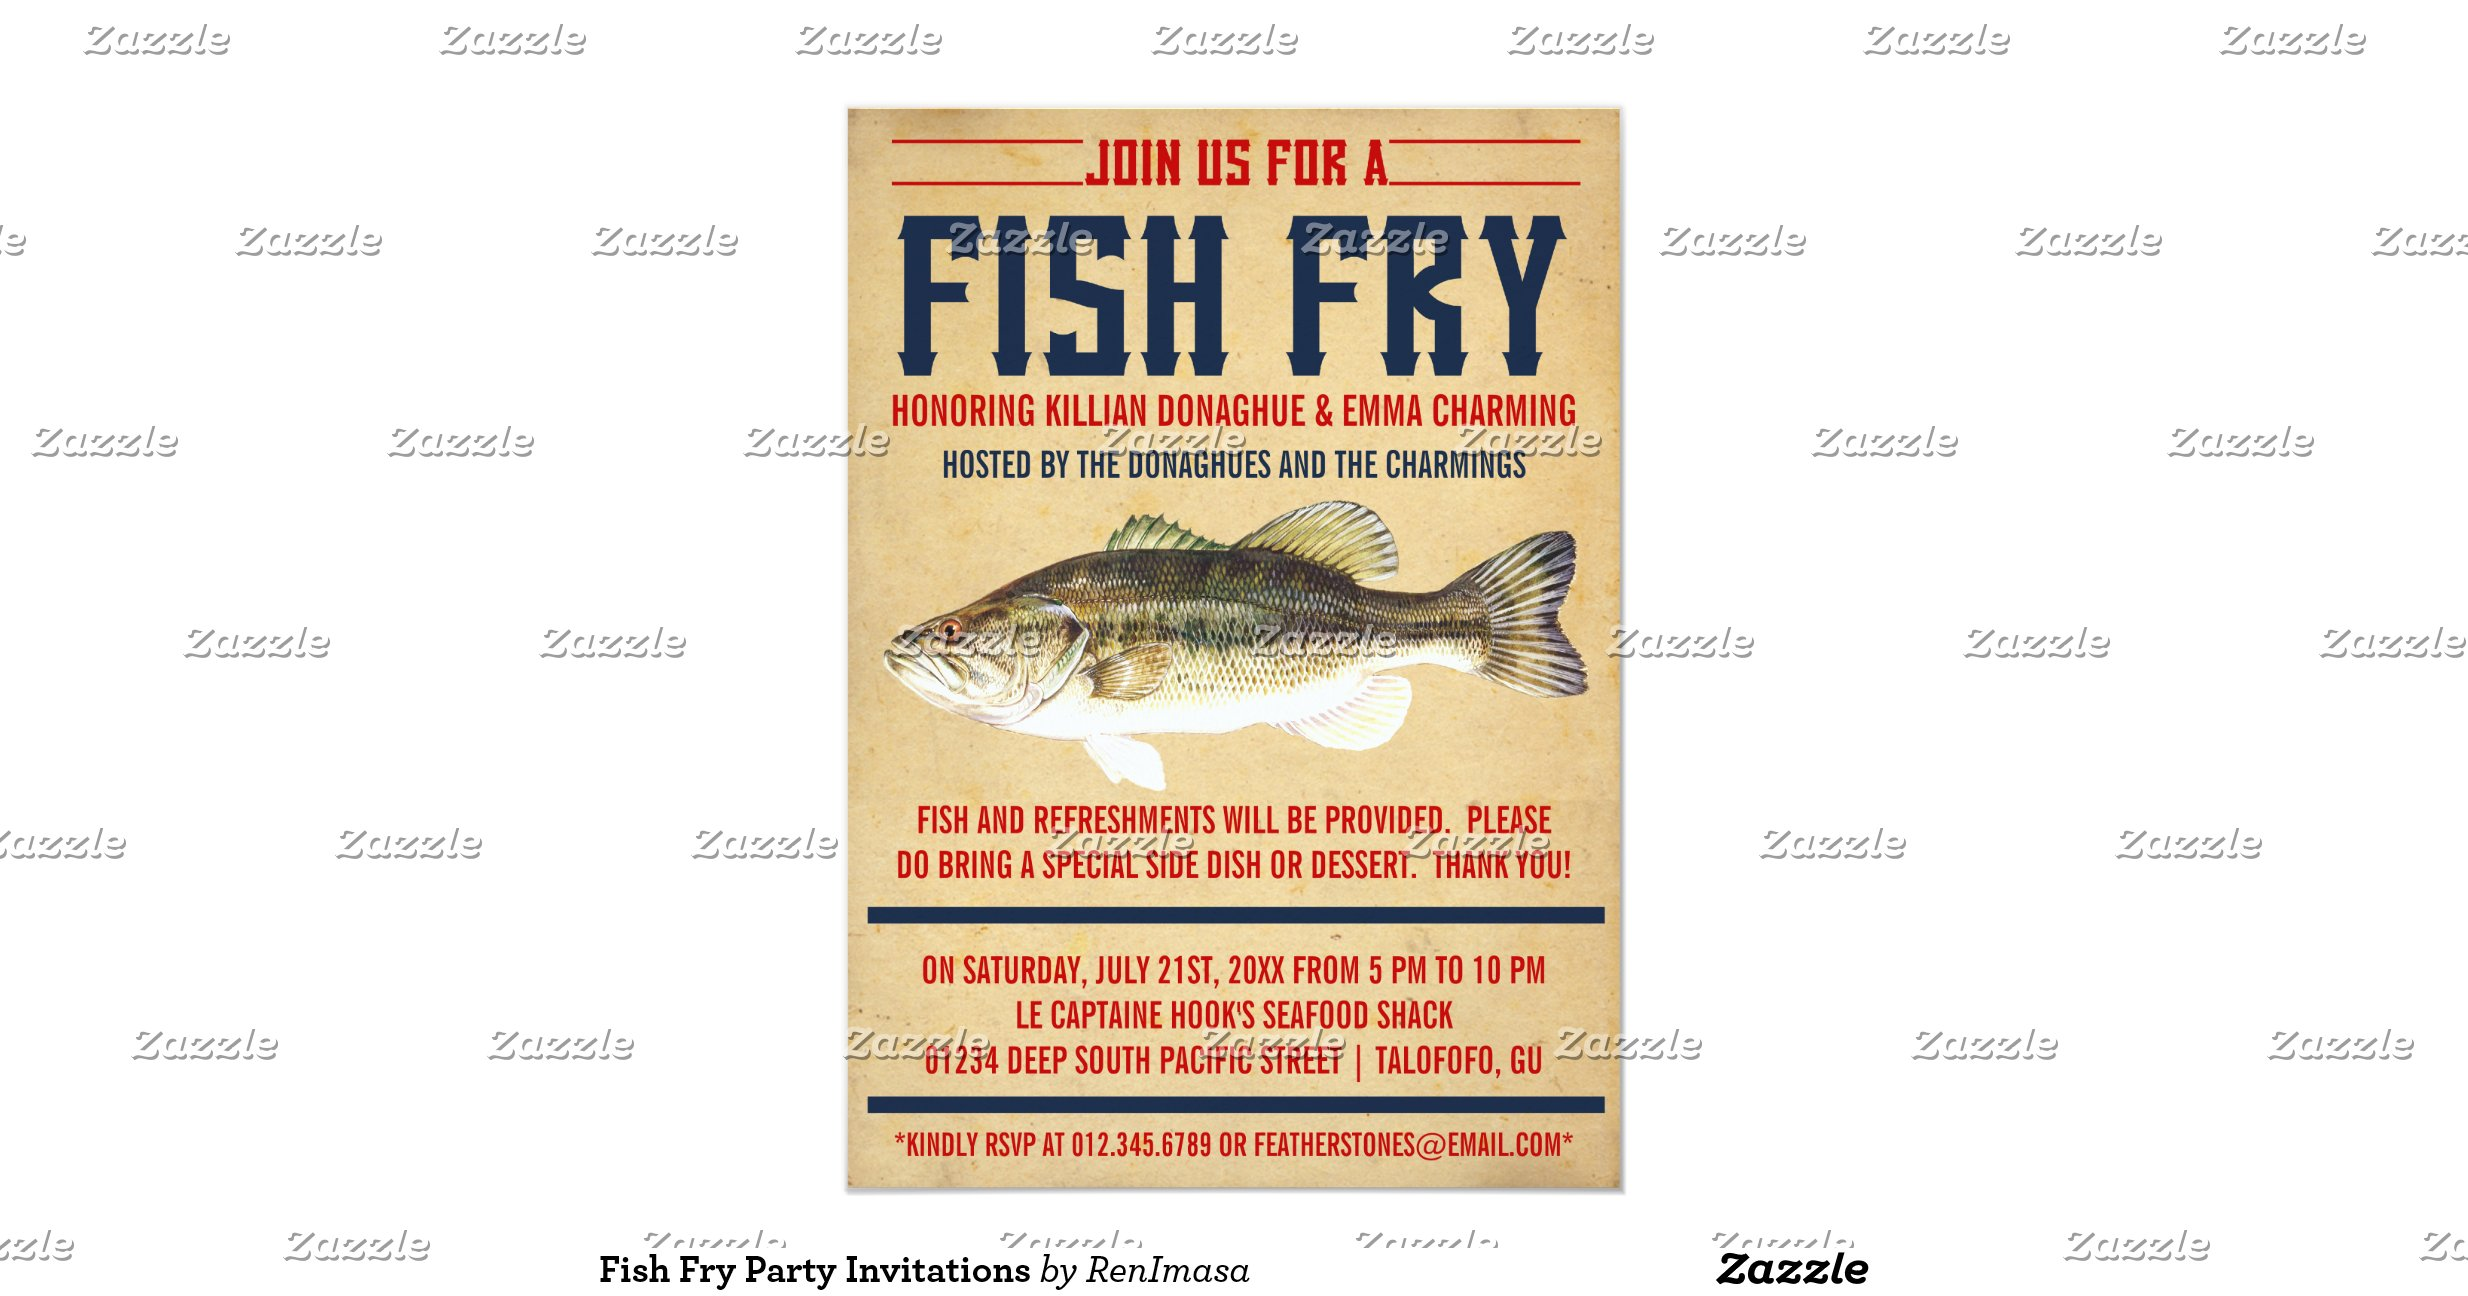 Fish fry party invitations for Fish fry in my area